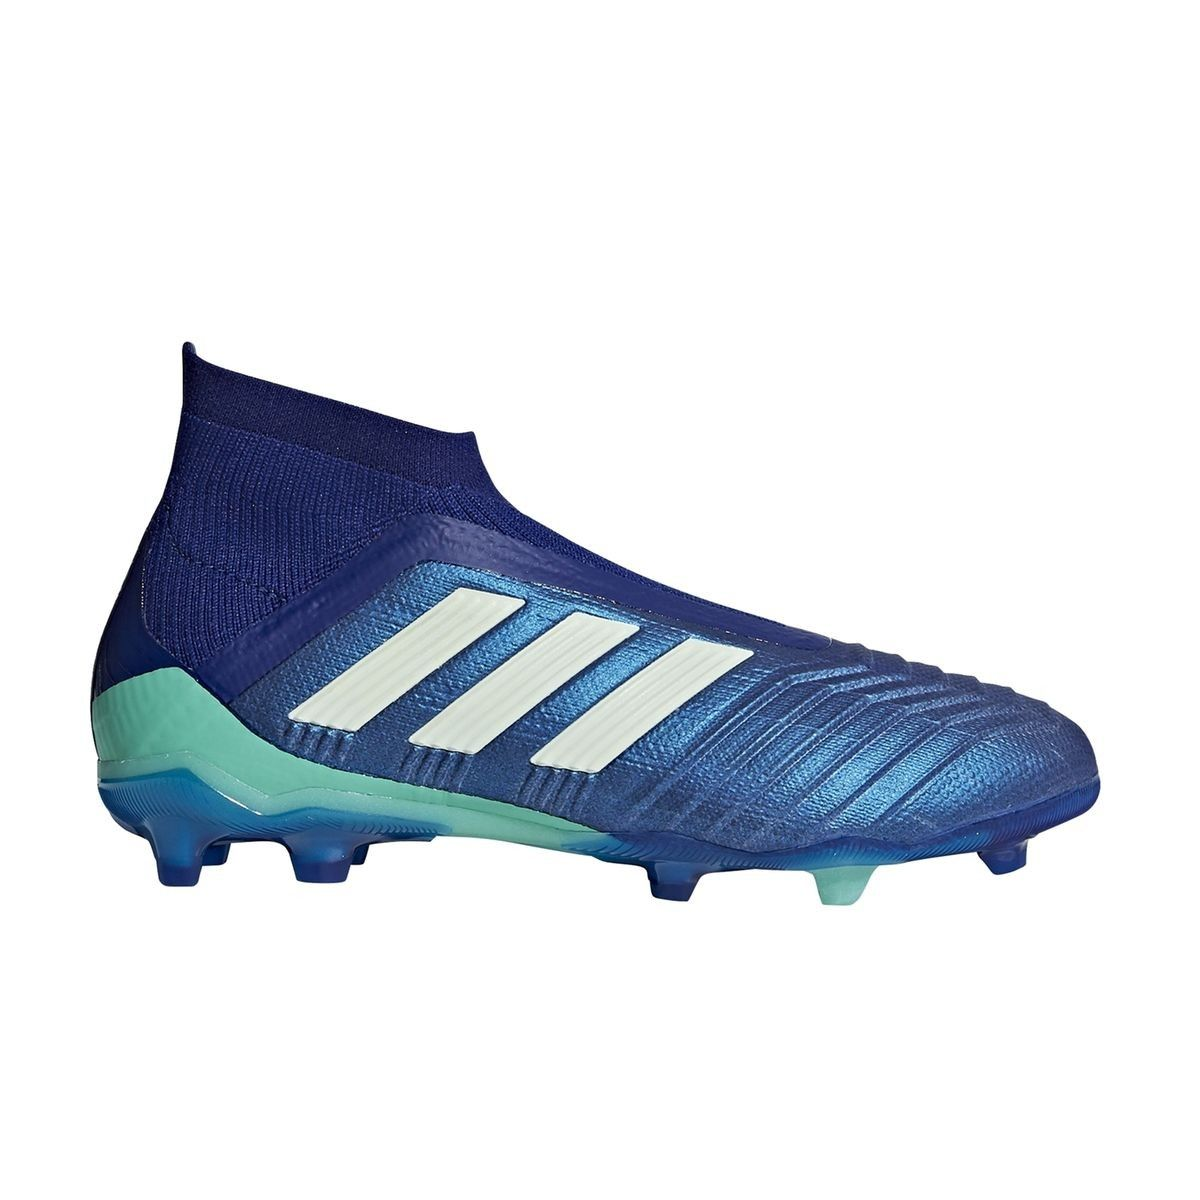 clearance sale differently cost charm Chaussures Football Chaussure De Football Adidas Predator 18 ...